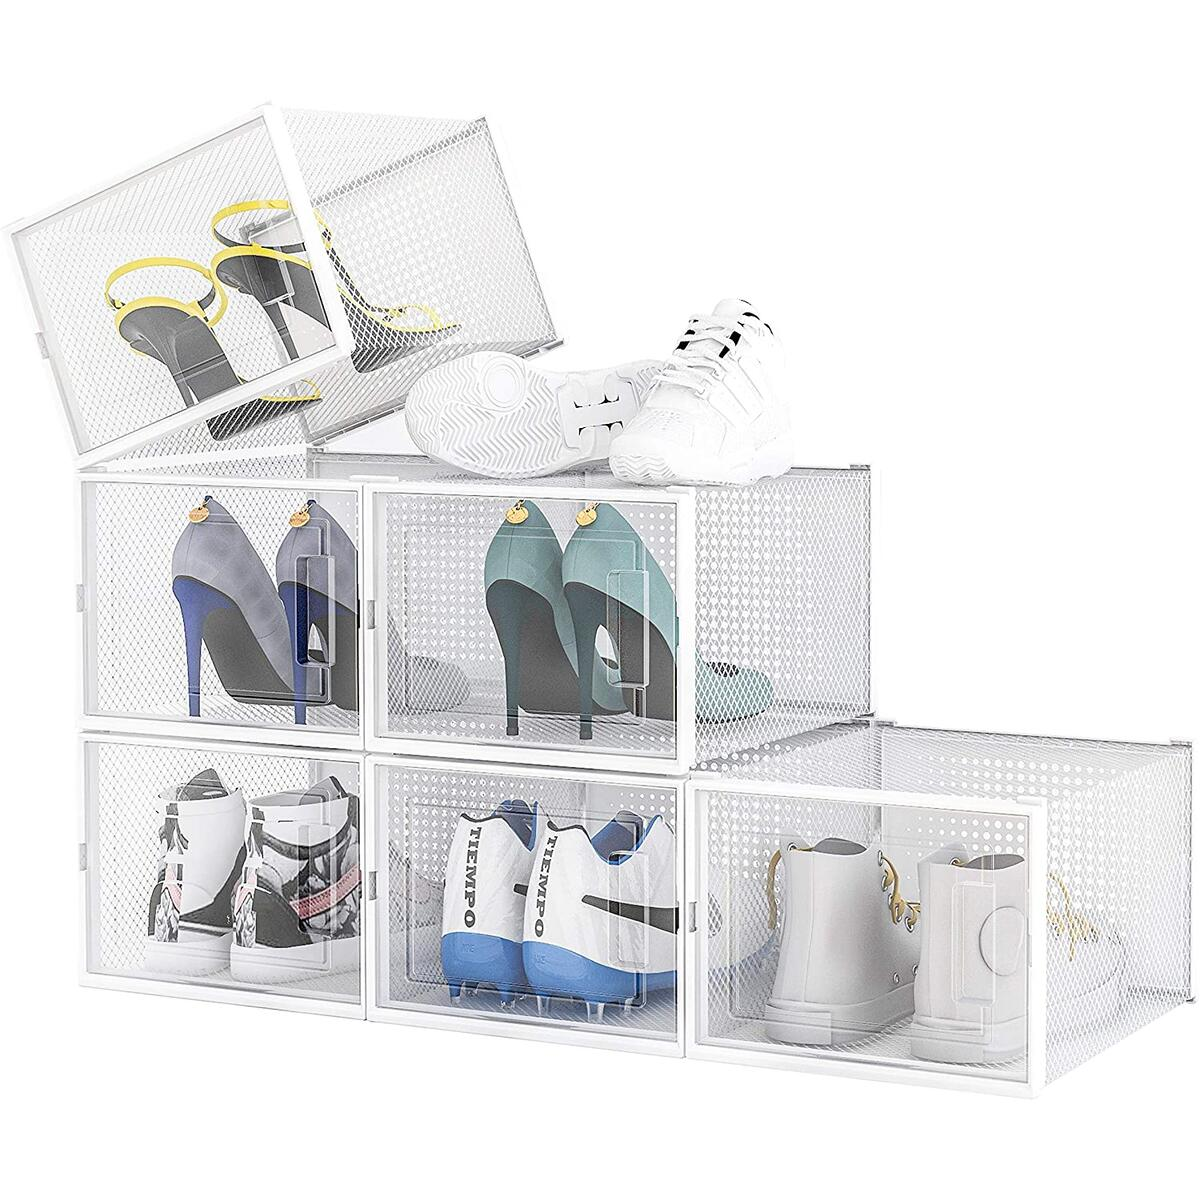 XL Stackable Shoe Box - Ventilated, Transparent Shoe Organizer - 6 Pack Collapsible, X-Large Sneaker Storage - 37% OFF including 10% Coupon